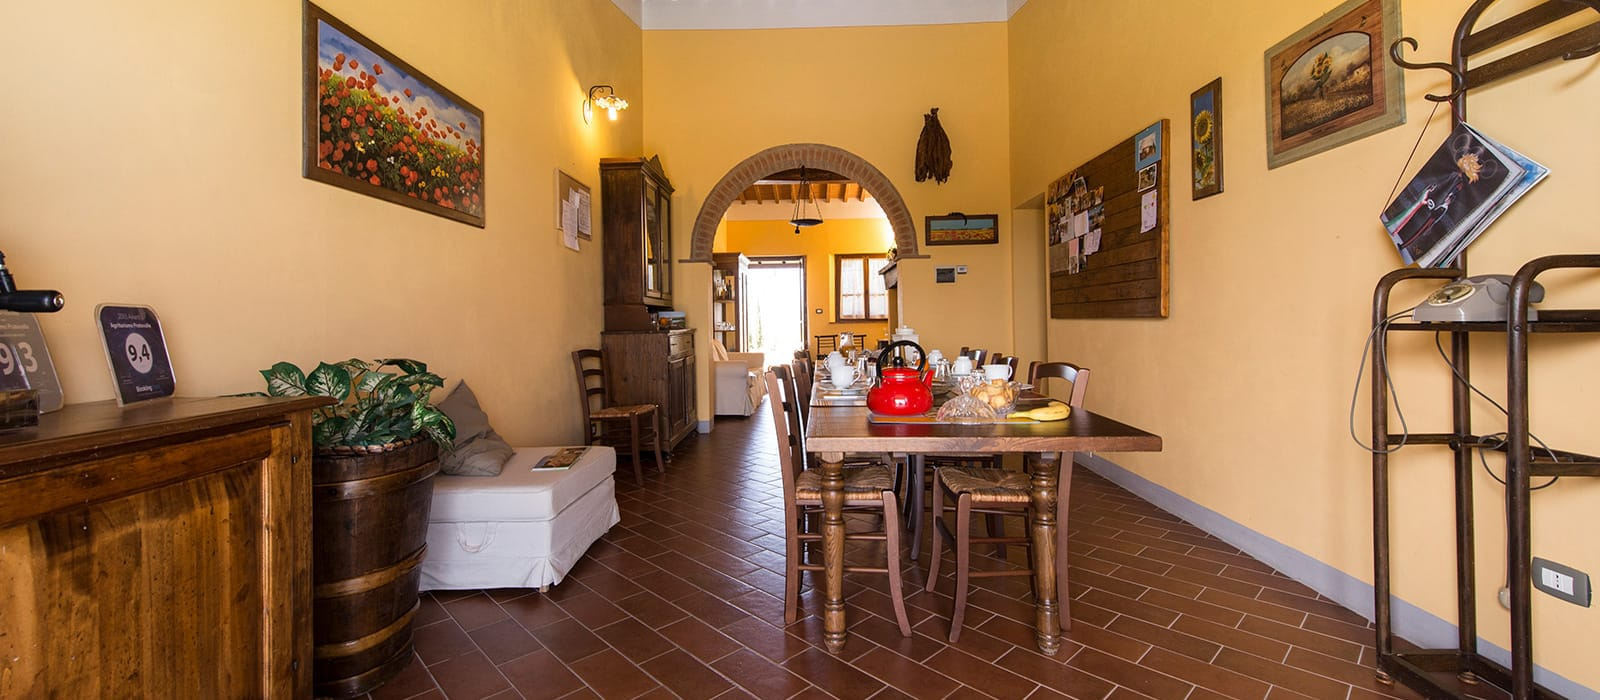 Country house in Cortona and surroundings with pool | Agriturismo Pratovalle